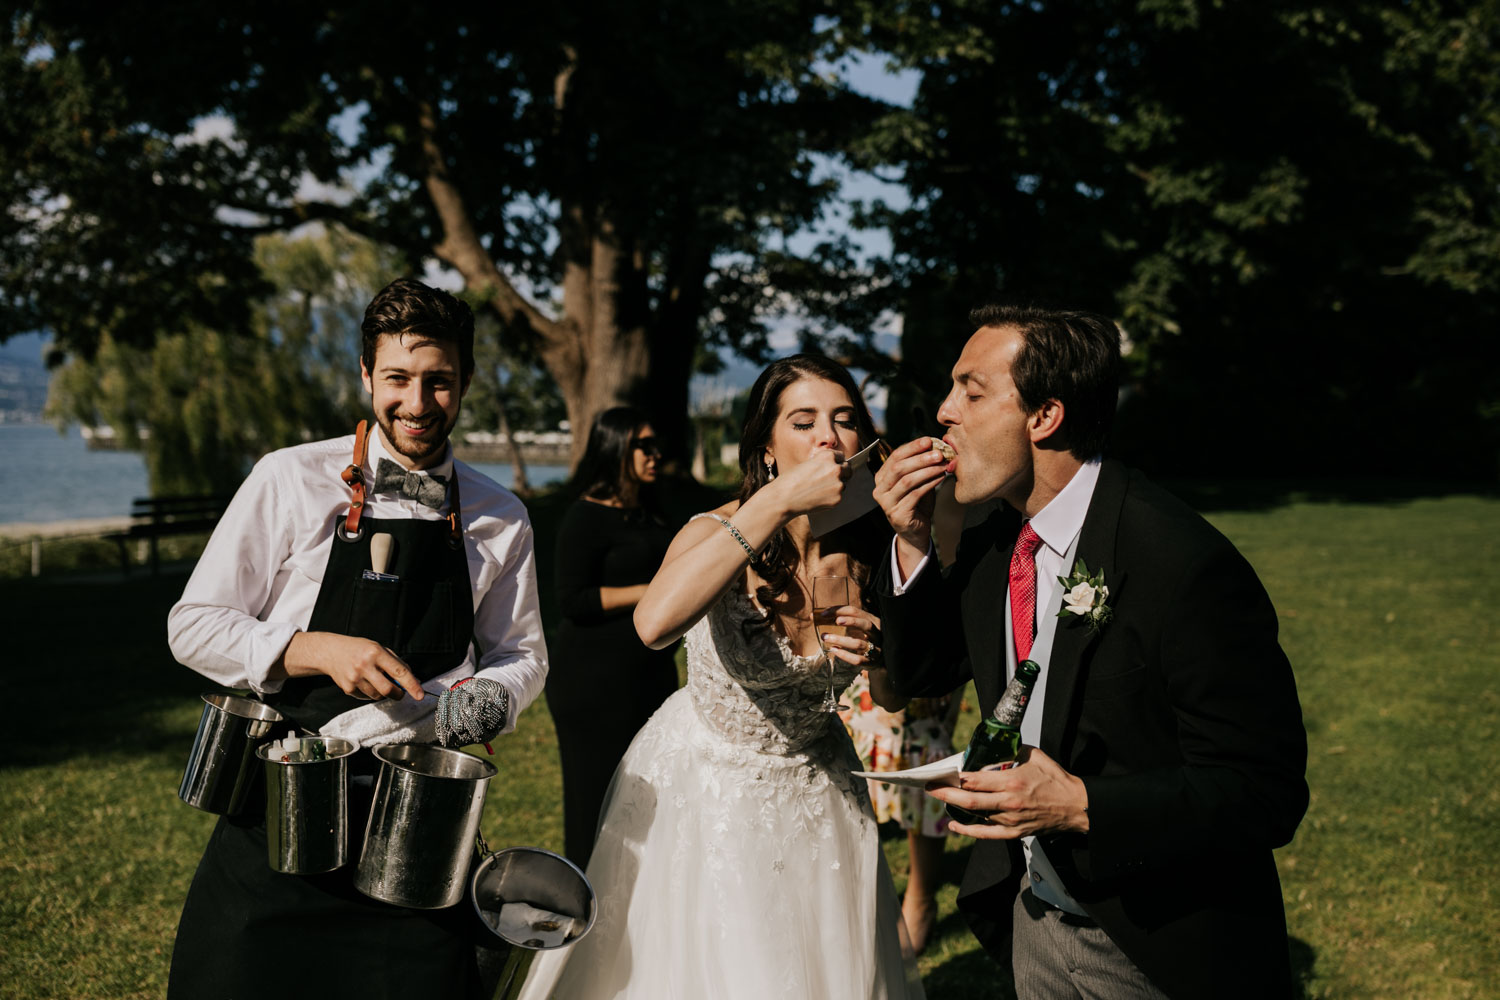 Bride and groom eating fresh shucked oysters on lawn during cocktail hour at Brock House Restaurant Wedding Venue on Jericho Beach